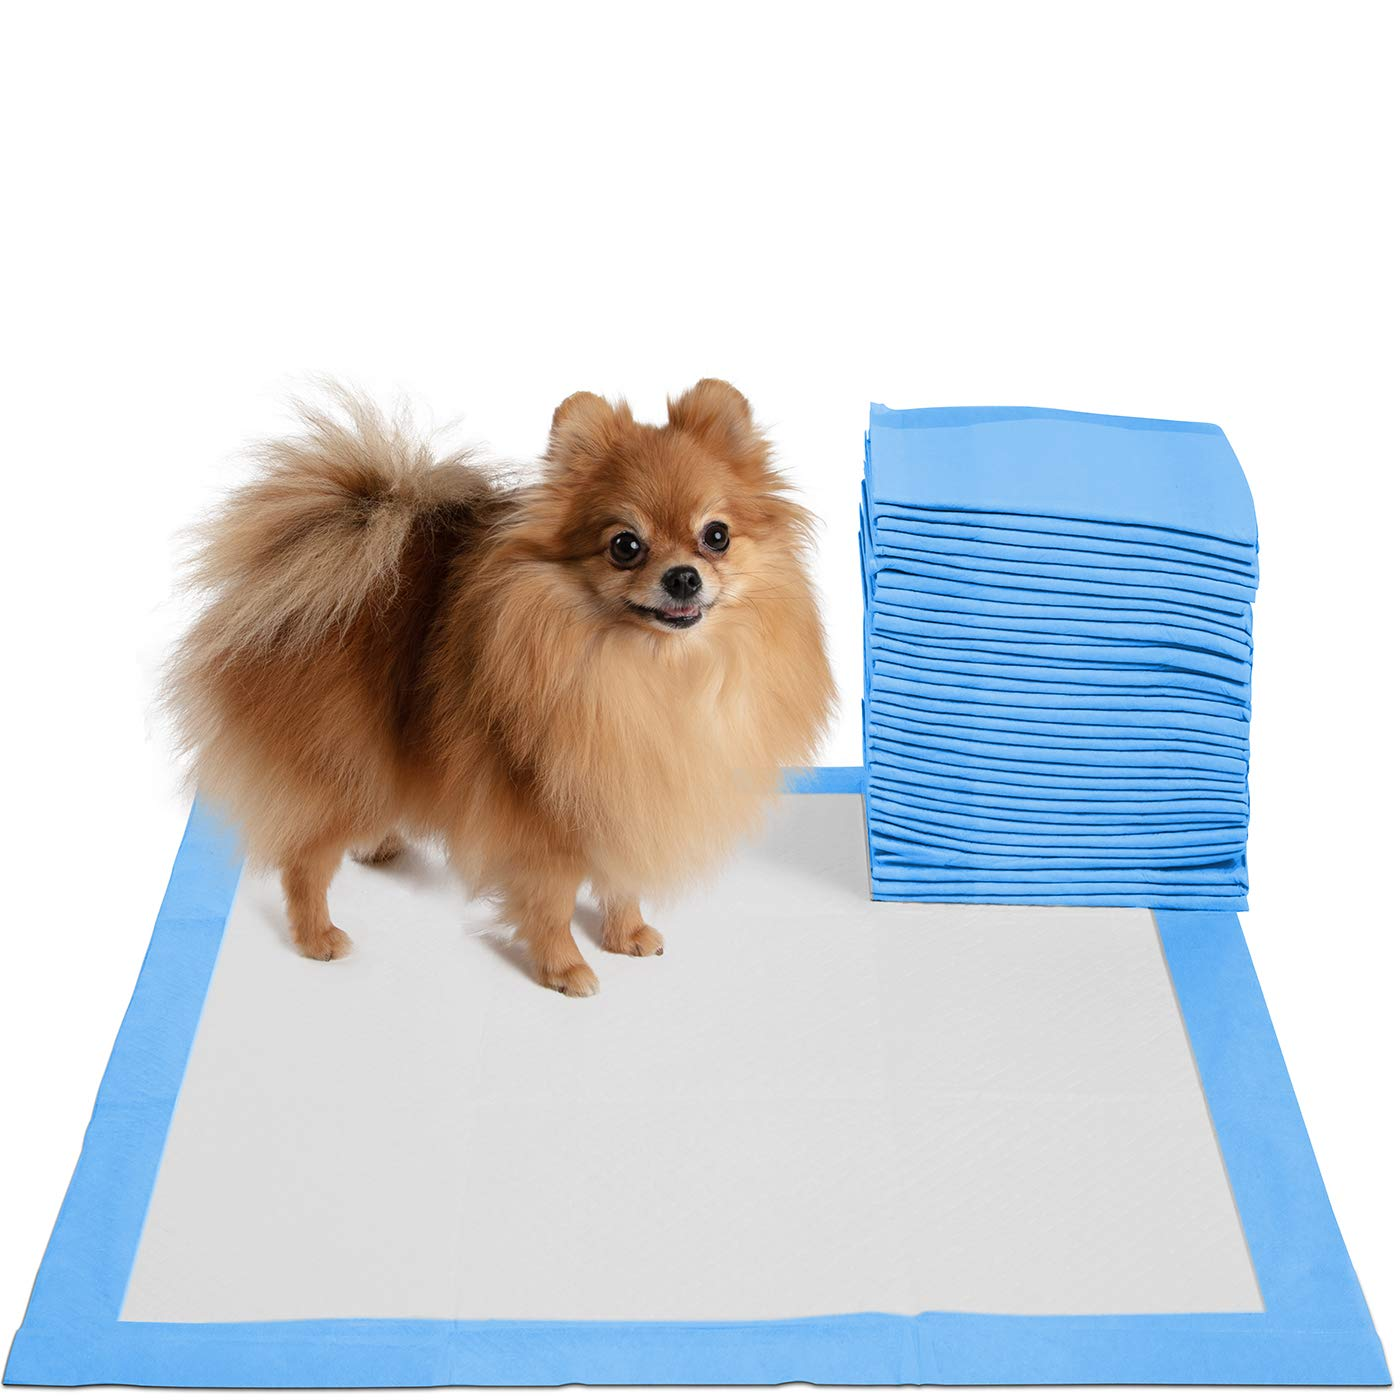 20 x 20 Pet Training Potty Pee Pads for Dogs and Cats – 30, 100, and 150 Count (30 Count)